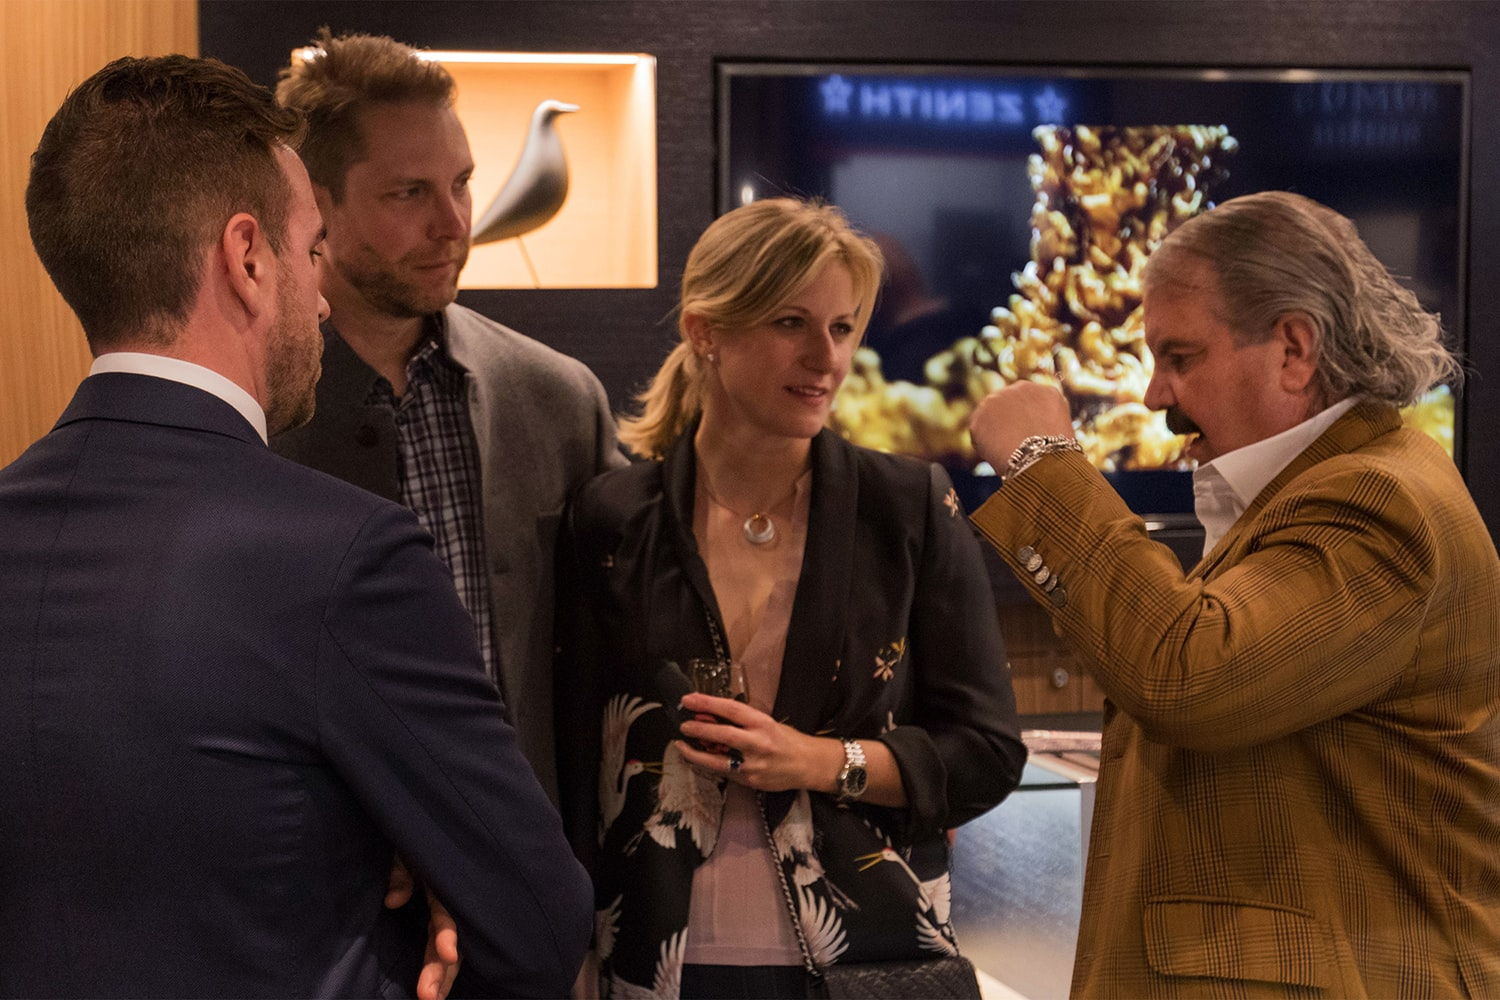 Photo Report: The Tudor Baselworld Novelties At Swiss Fine Timing In Chicago Photo Report: The Tudor Baselworld Novelties At Swiss Fine Timing In Chicago  Just People Observing only 11